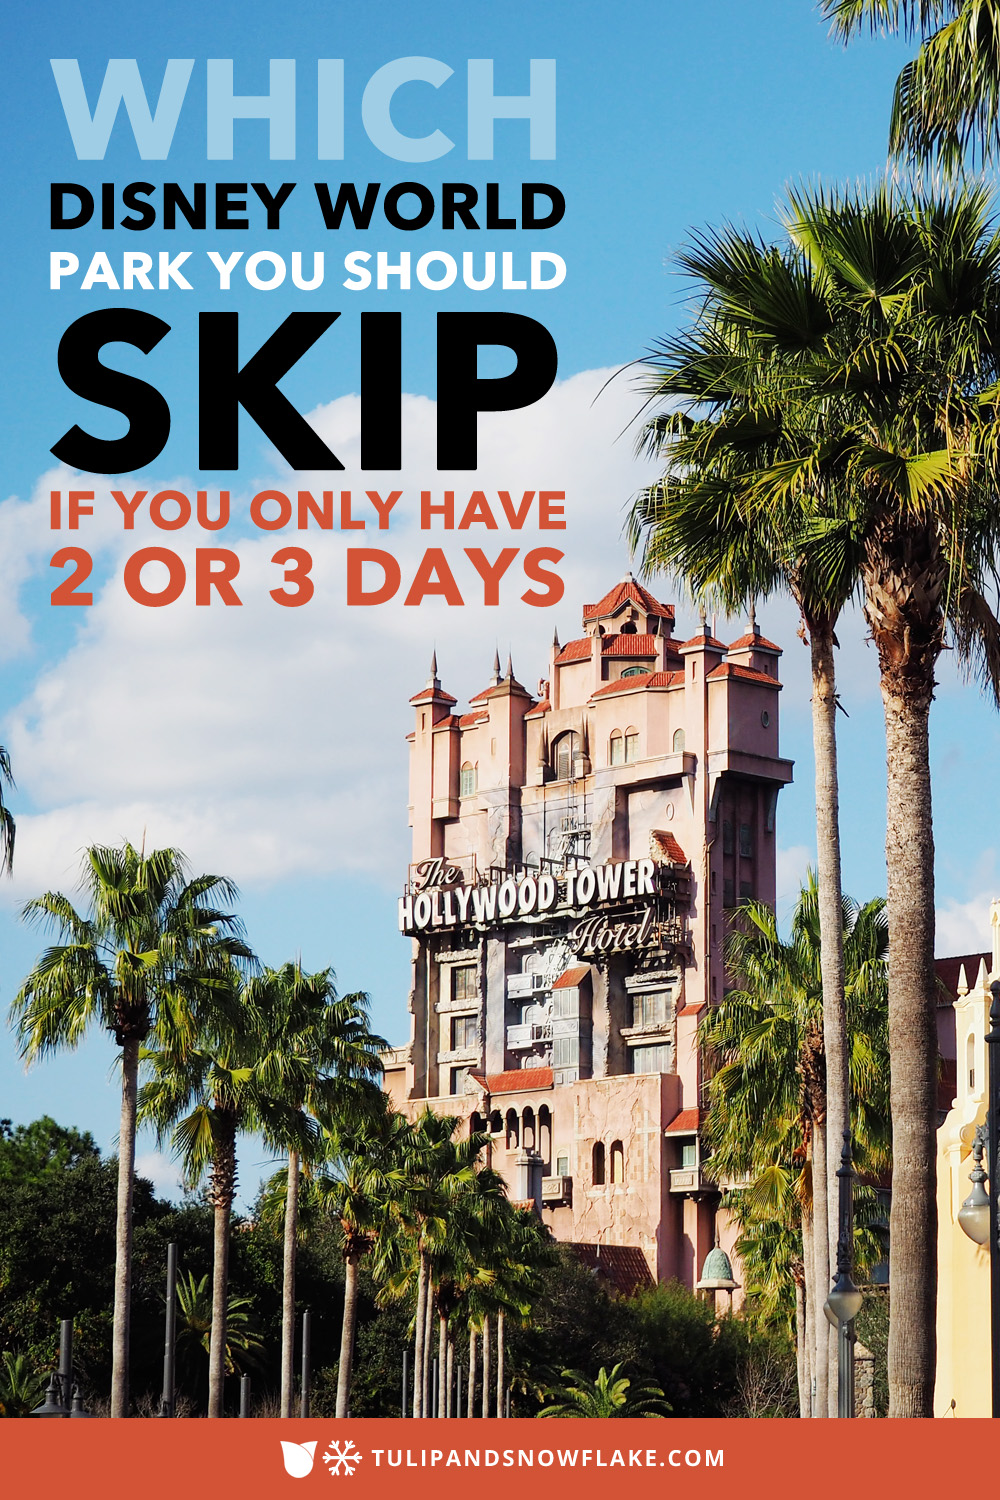 Which Disney World park to skip if you have have only 2 or 3 days